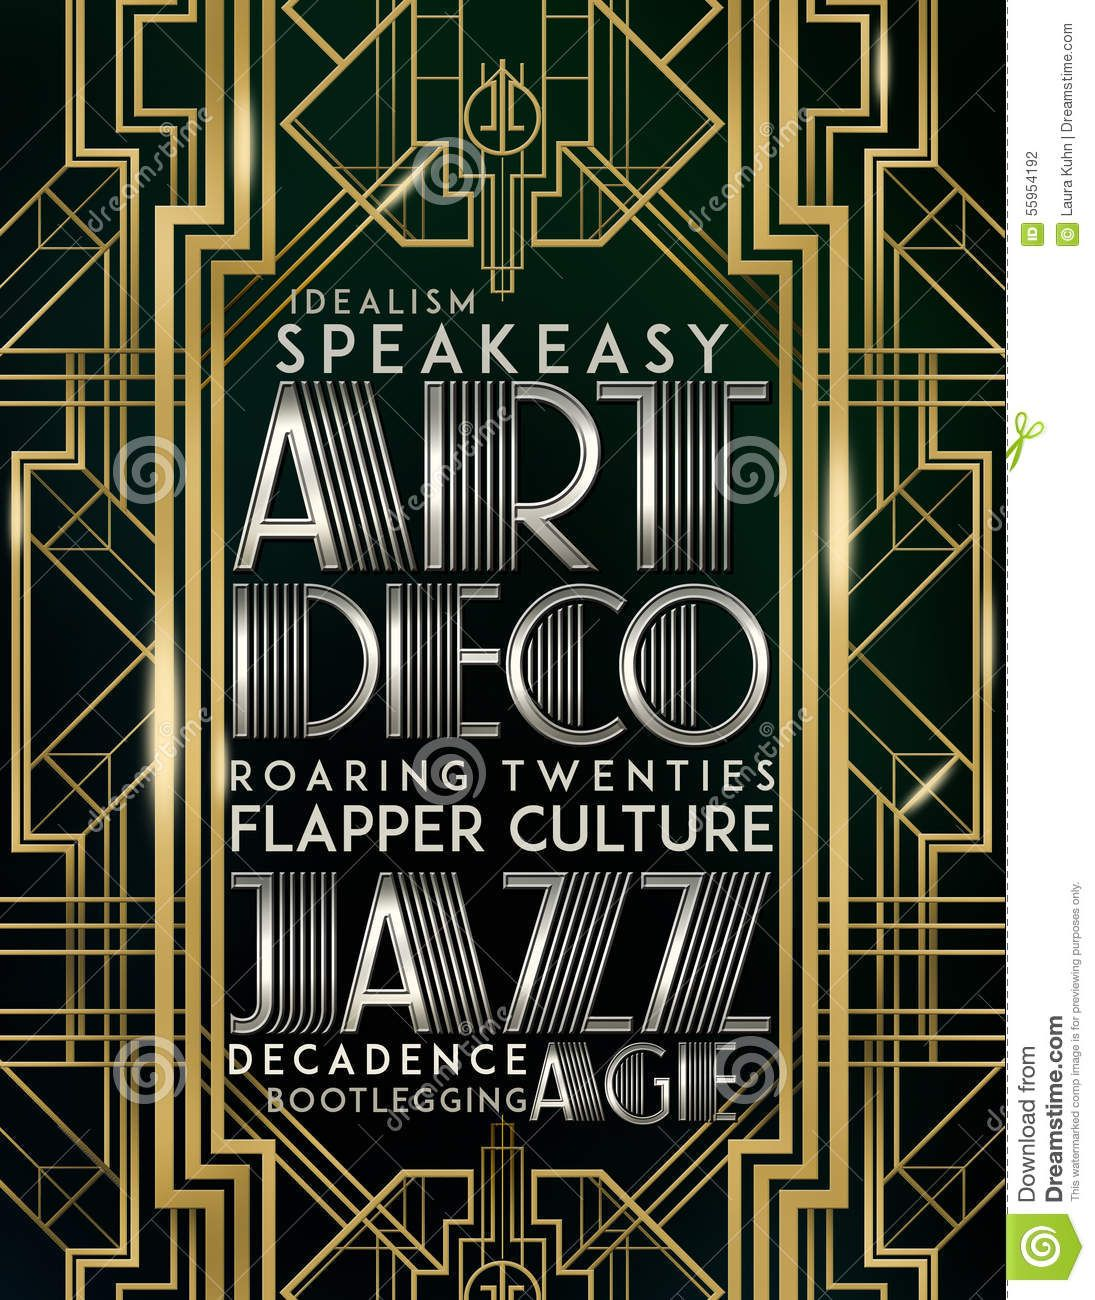 Art Deco Stile Gatsby Style Art Deco Jazz Era Stock Illustration Image